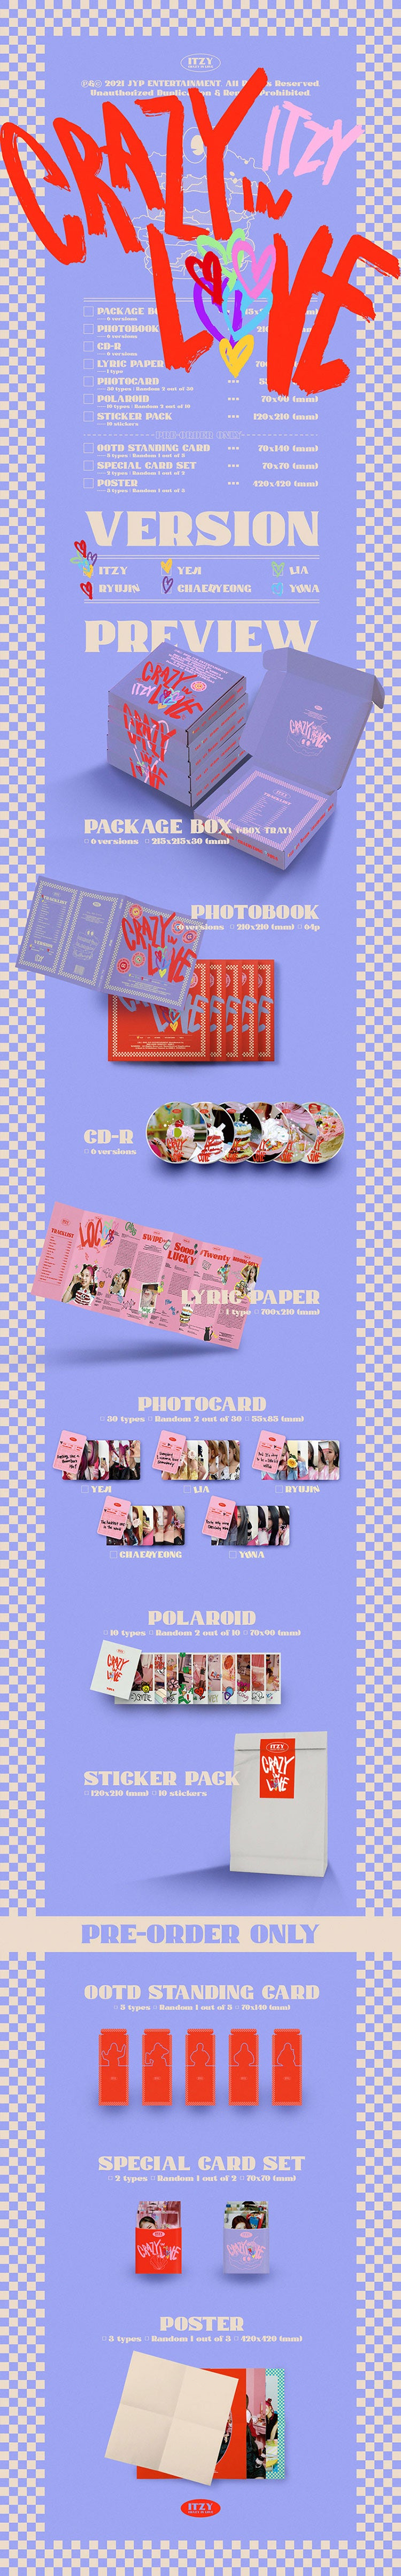 ITZY - The 1st Album CRAZY IN LOVE